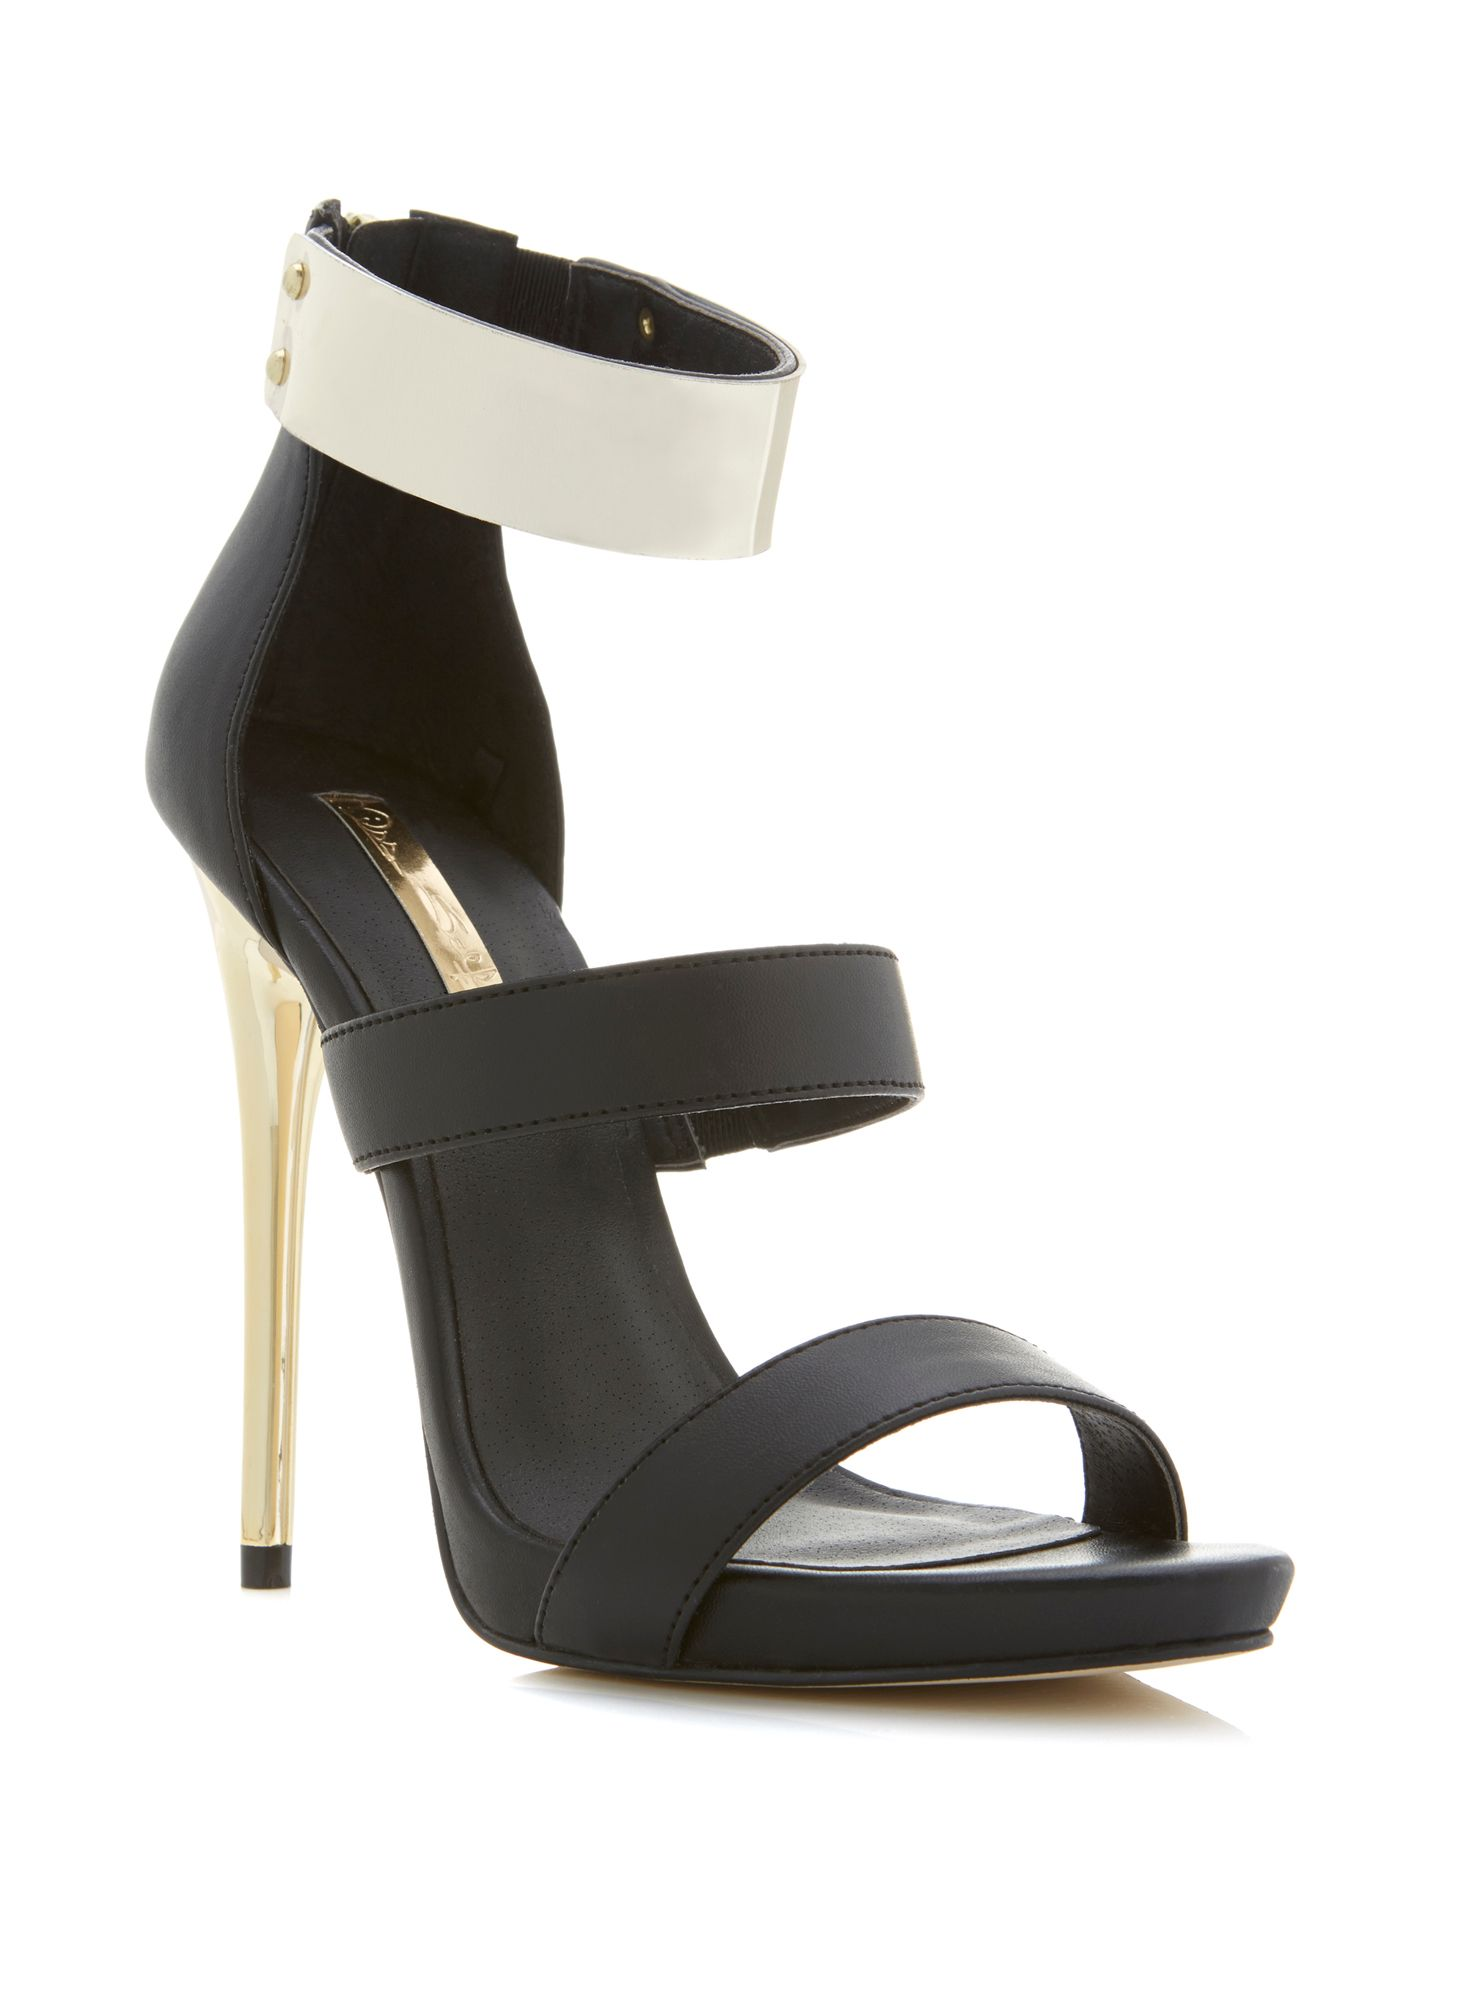 Casino high sandal